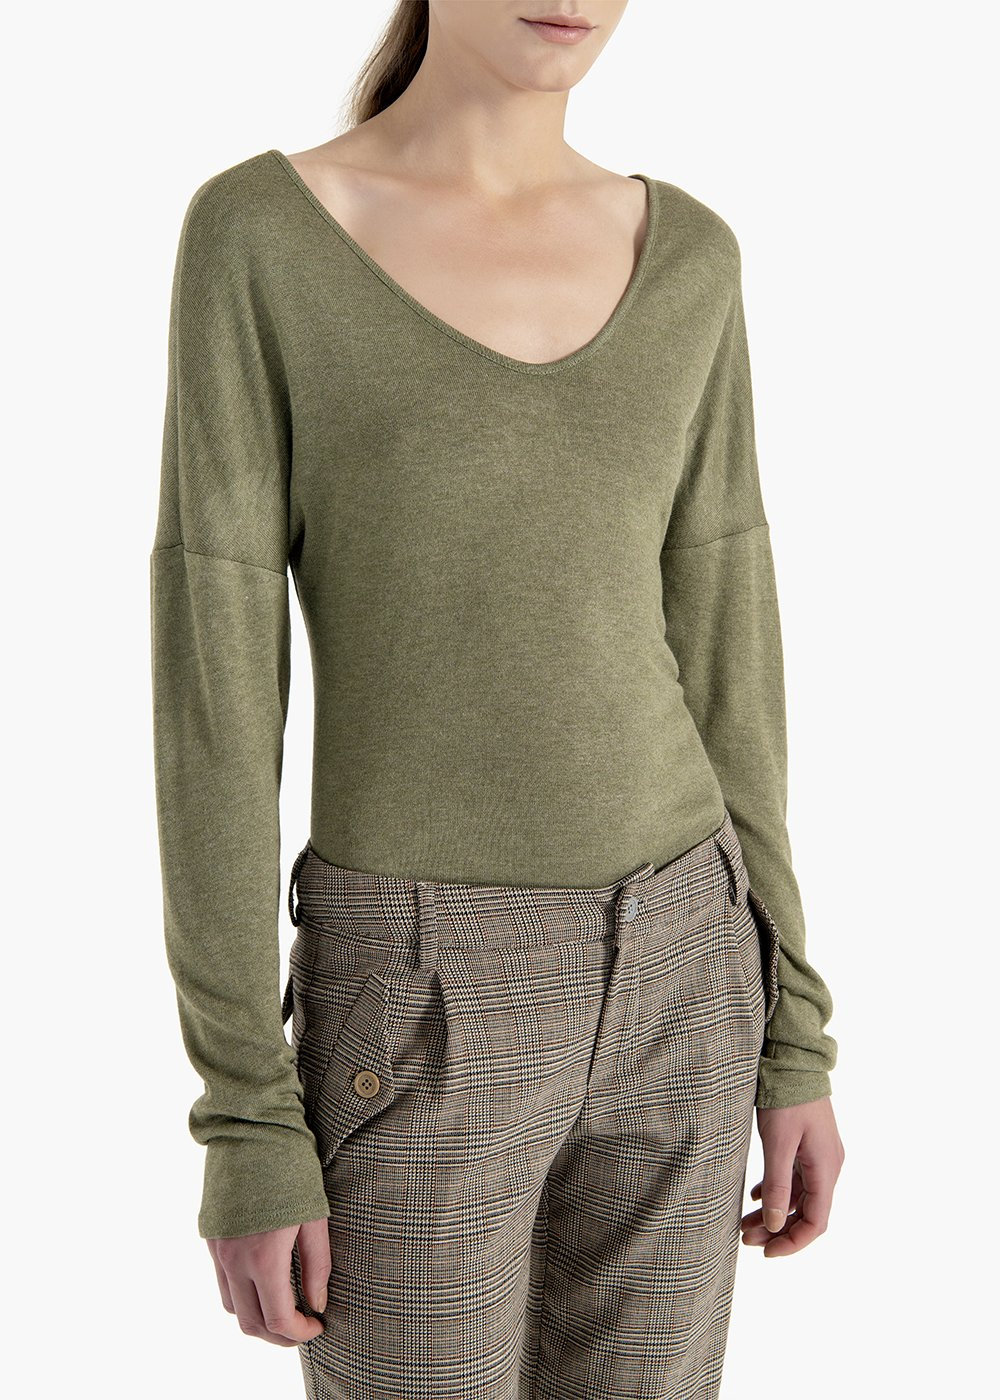 Sweater Marylin in concrete-colored viscose